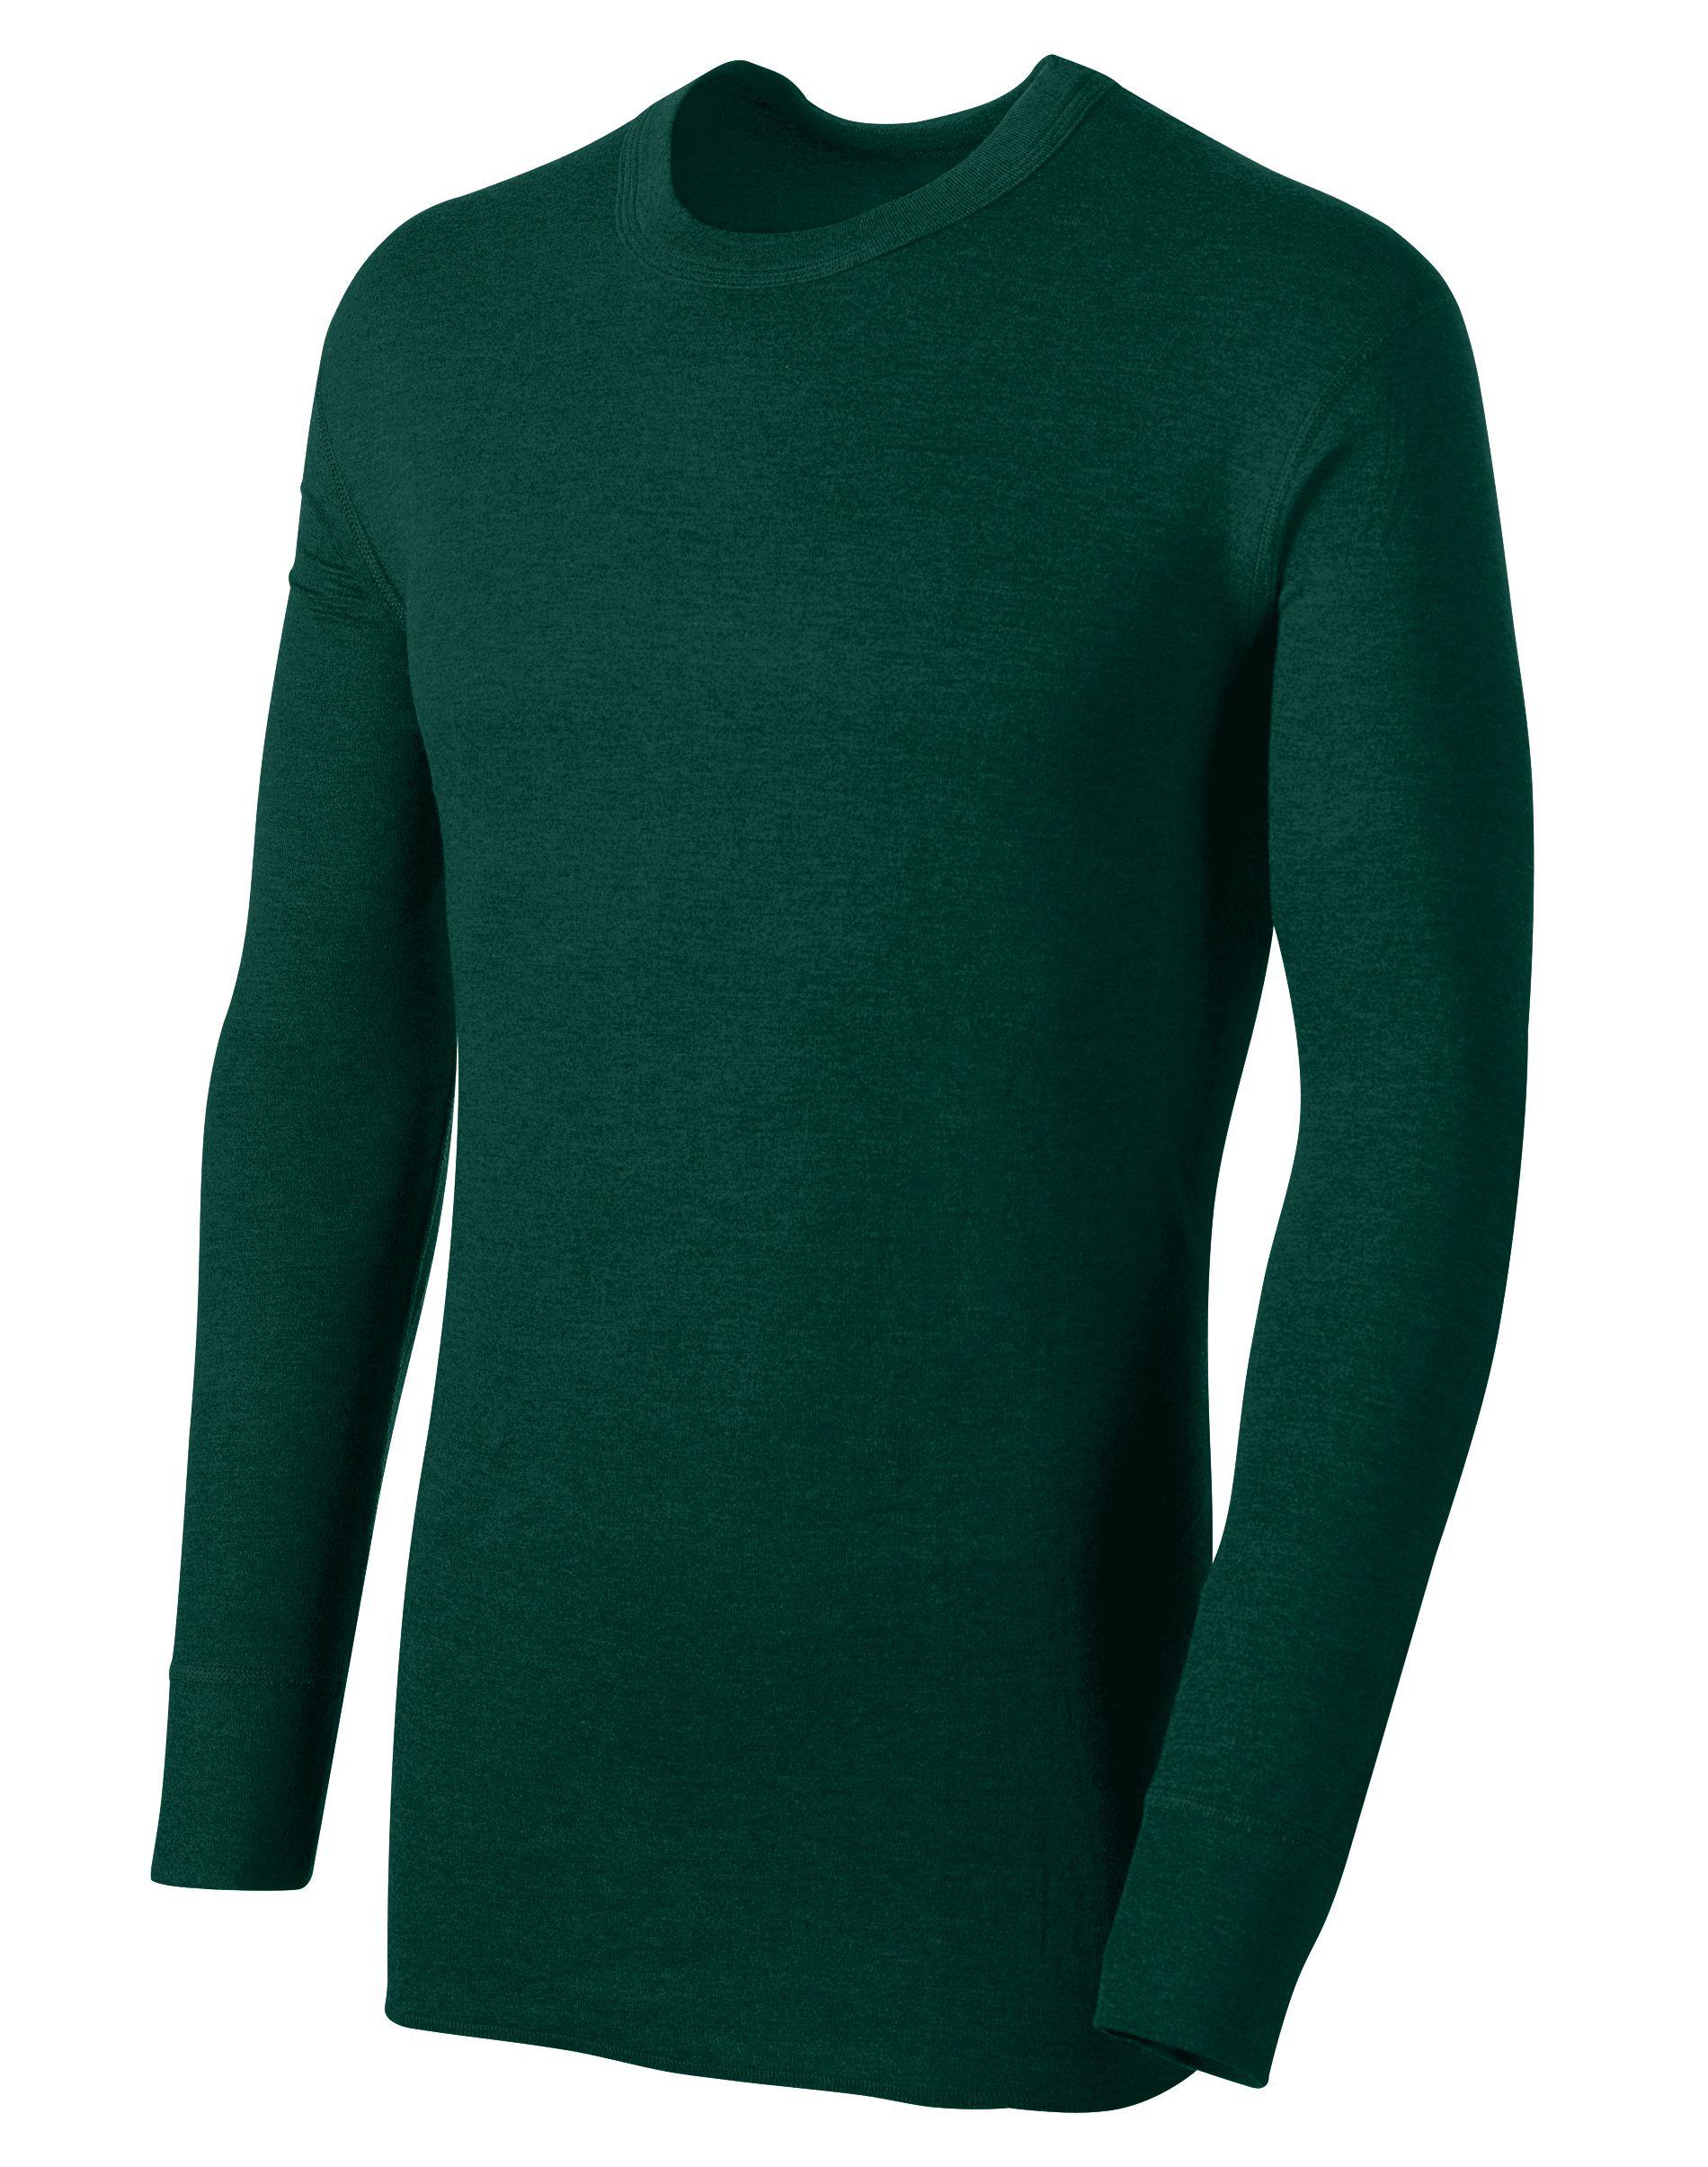 24bdcee7c Lyst - Champion Duofold® Originals Thermal Crew in Green for Men